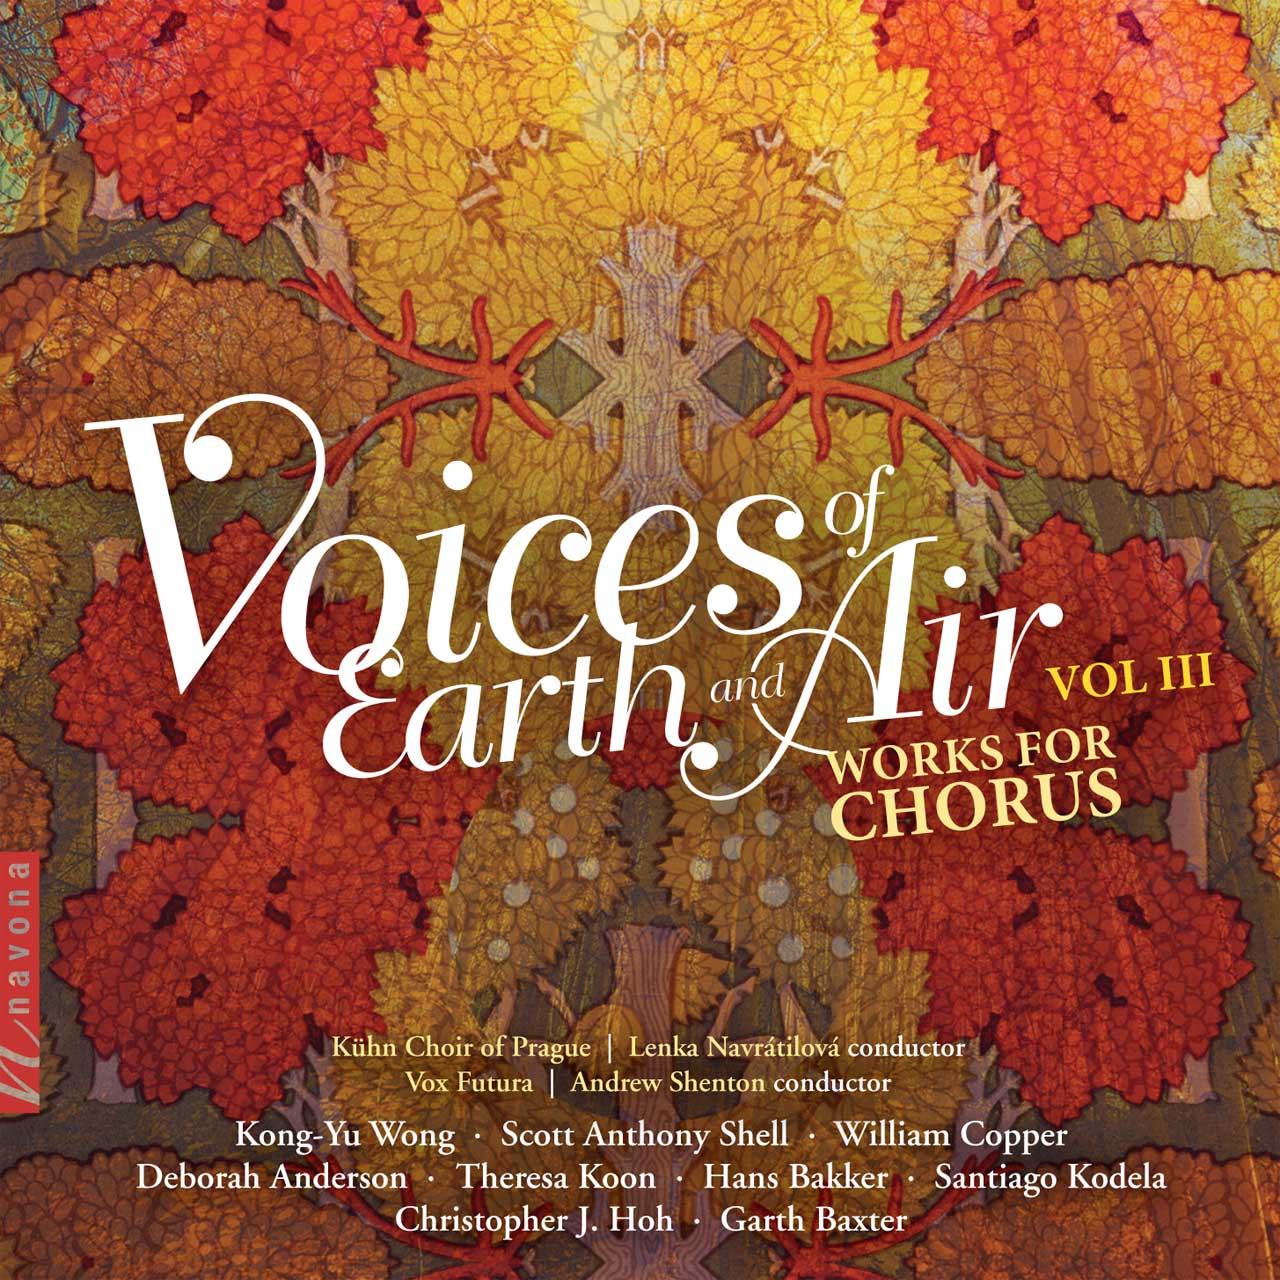 Voices of Earth & Air Vol. 3 Works for Chorus